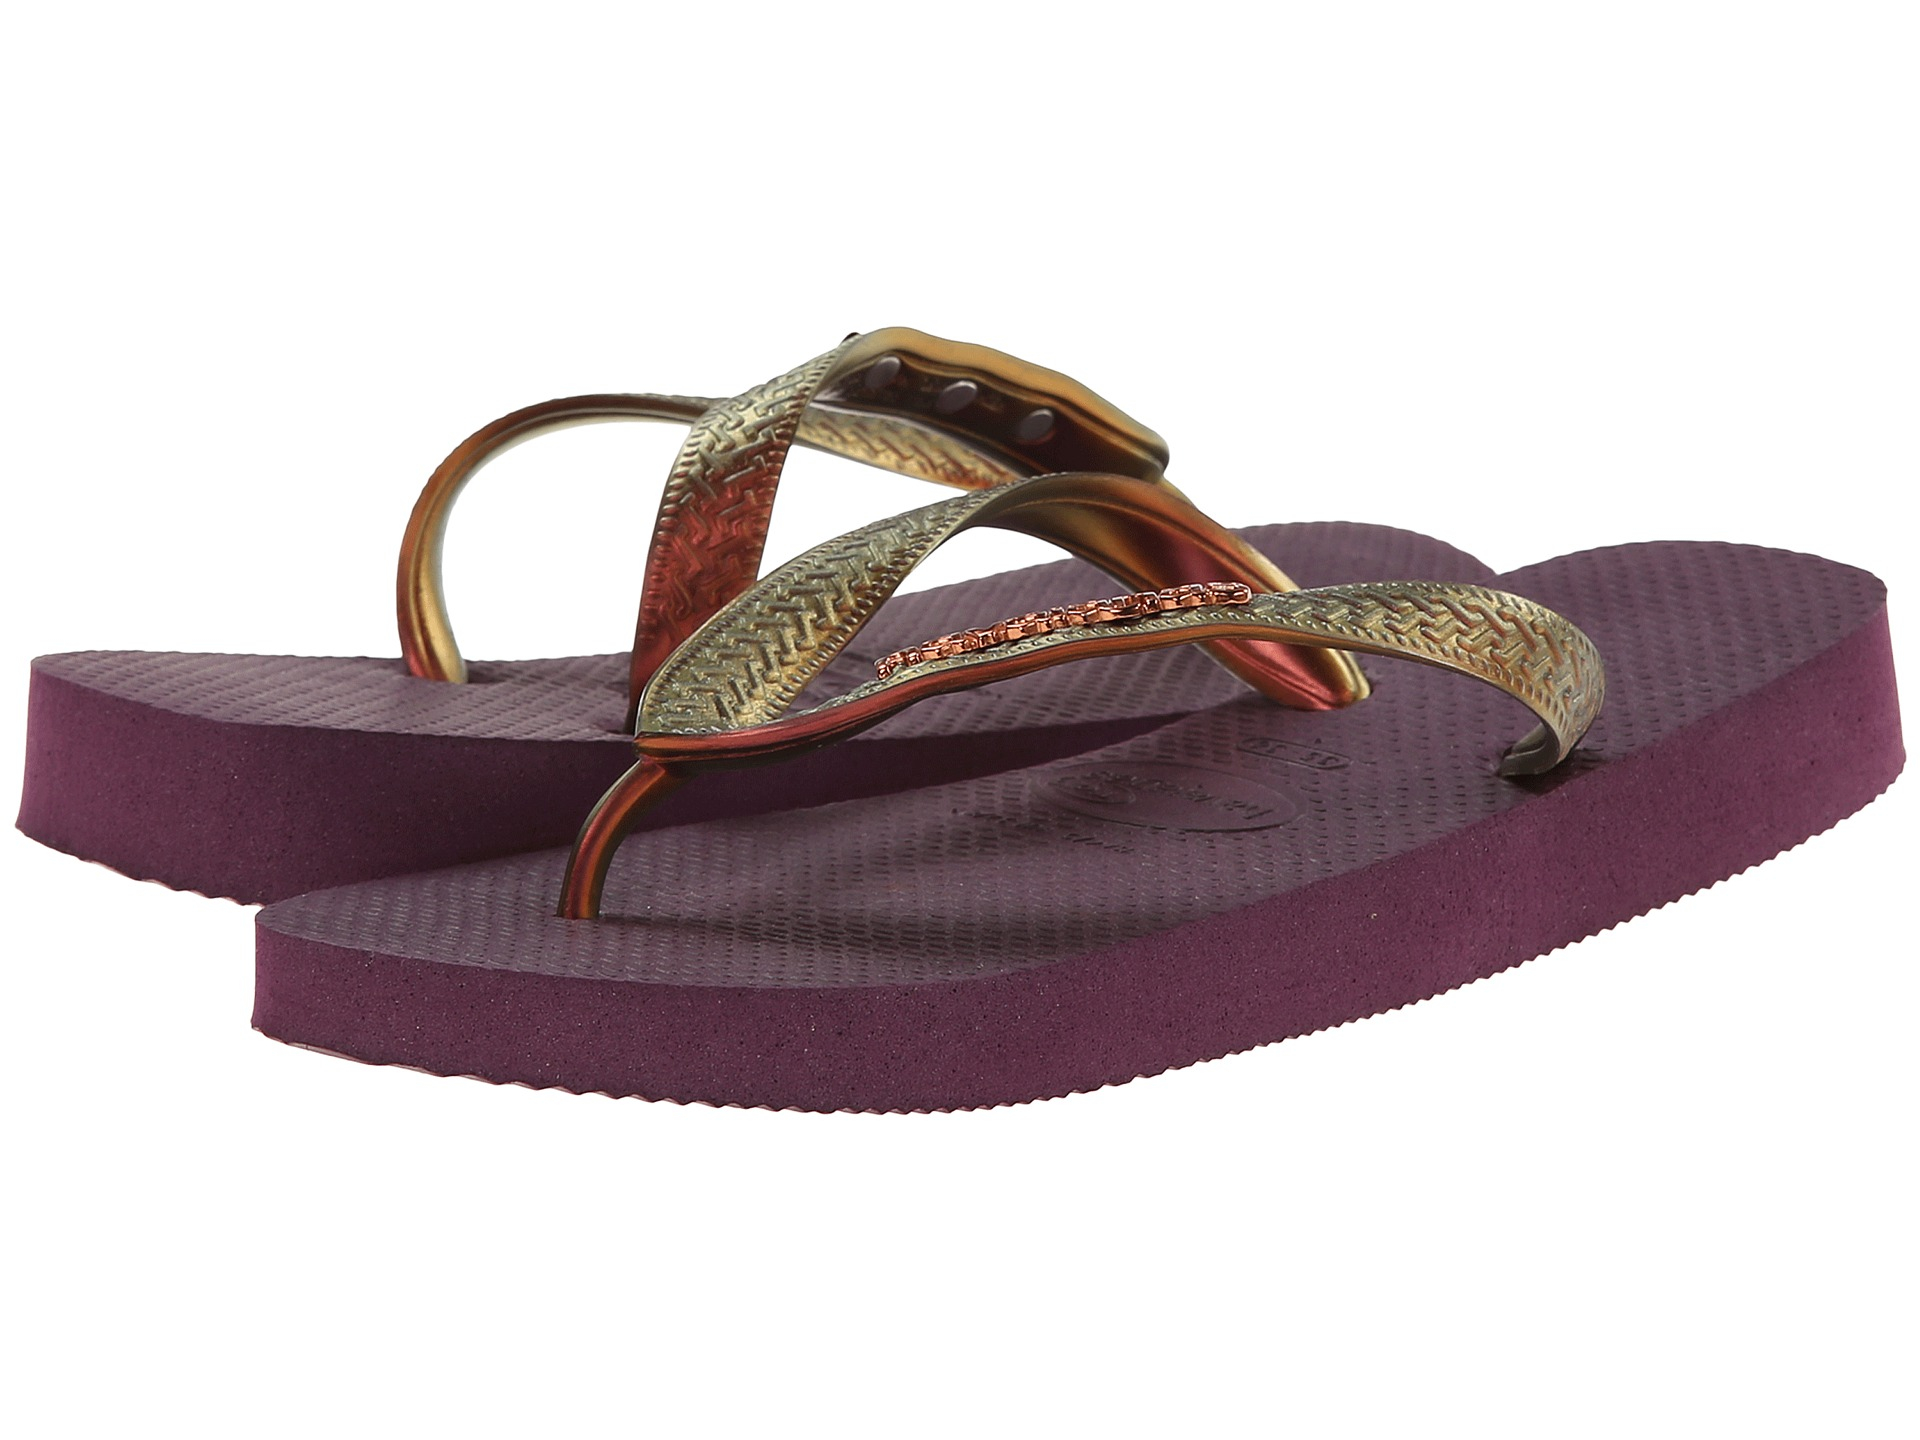 76d3c9f53 Lyst - Havaianas Top Furta Cor Flip Flop in Purple